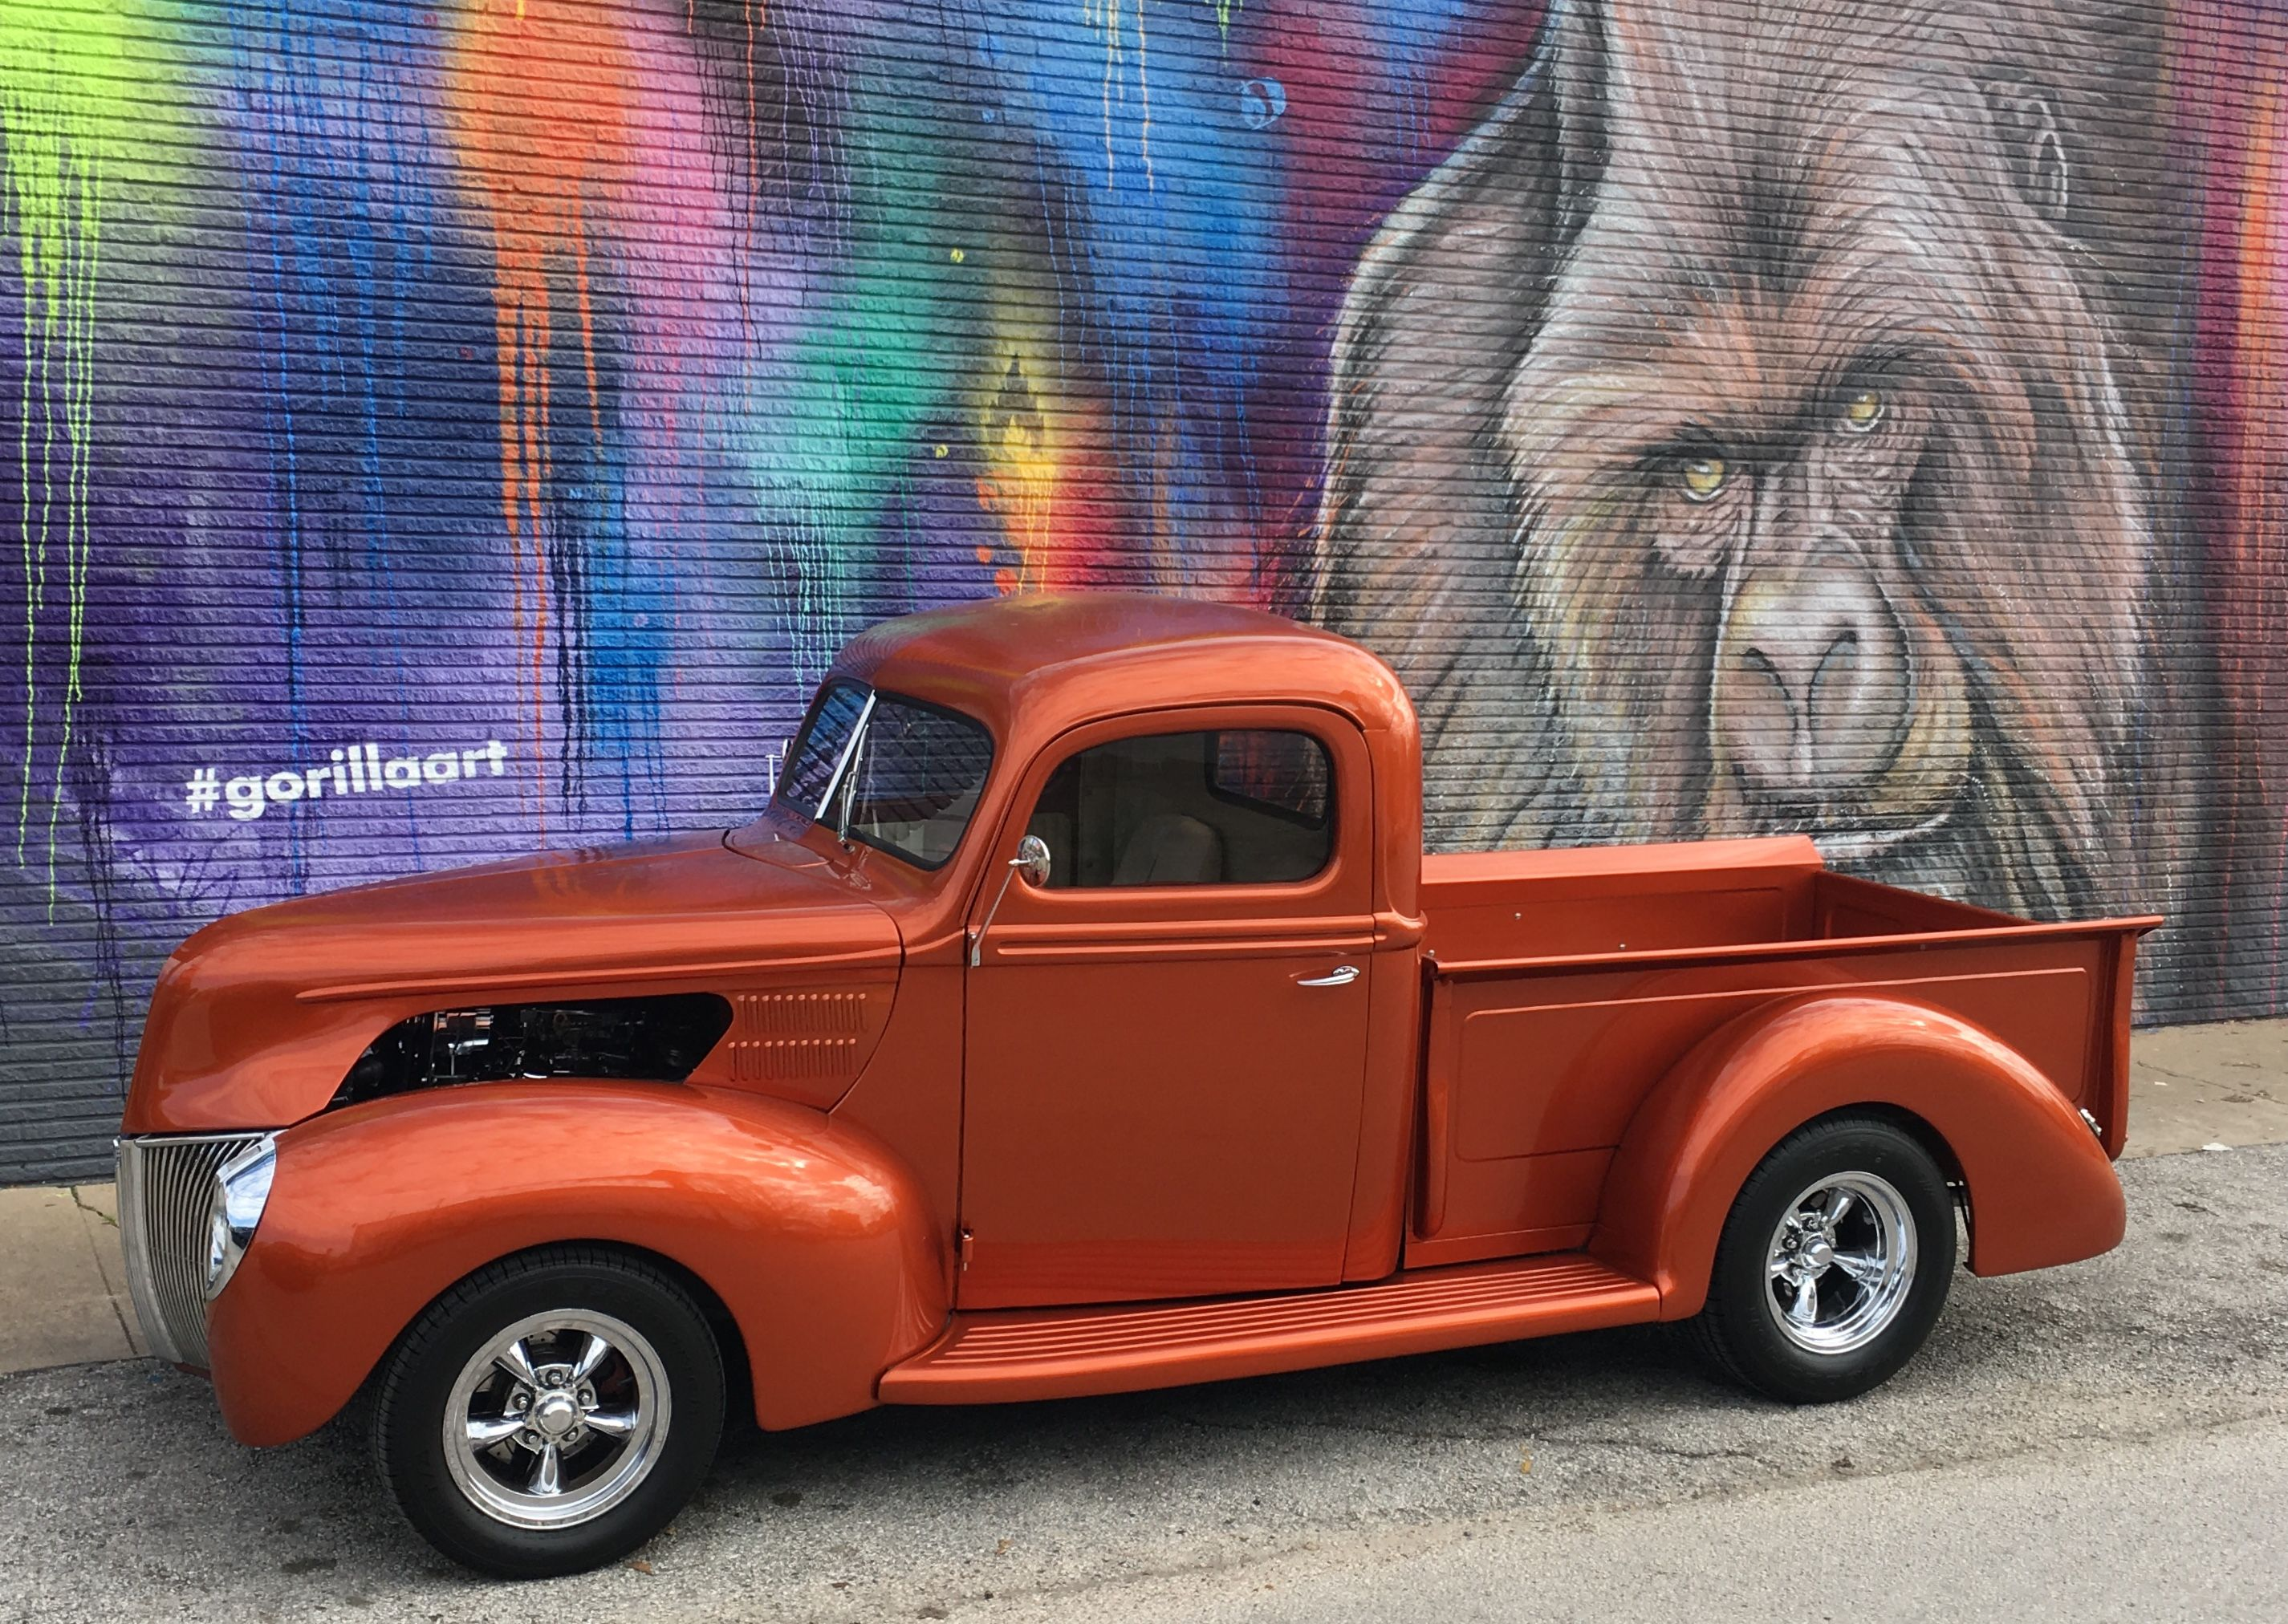 Pin By Alan M On Wood S 40 Ford Pickup Truck Vintage Trucks Ford Pickup Trucks Cool Trucks